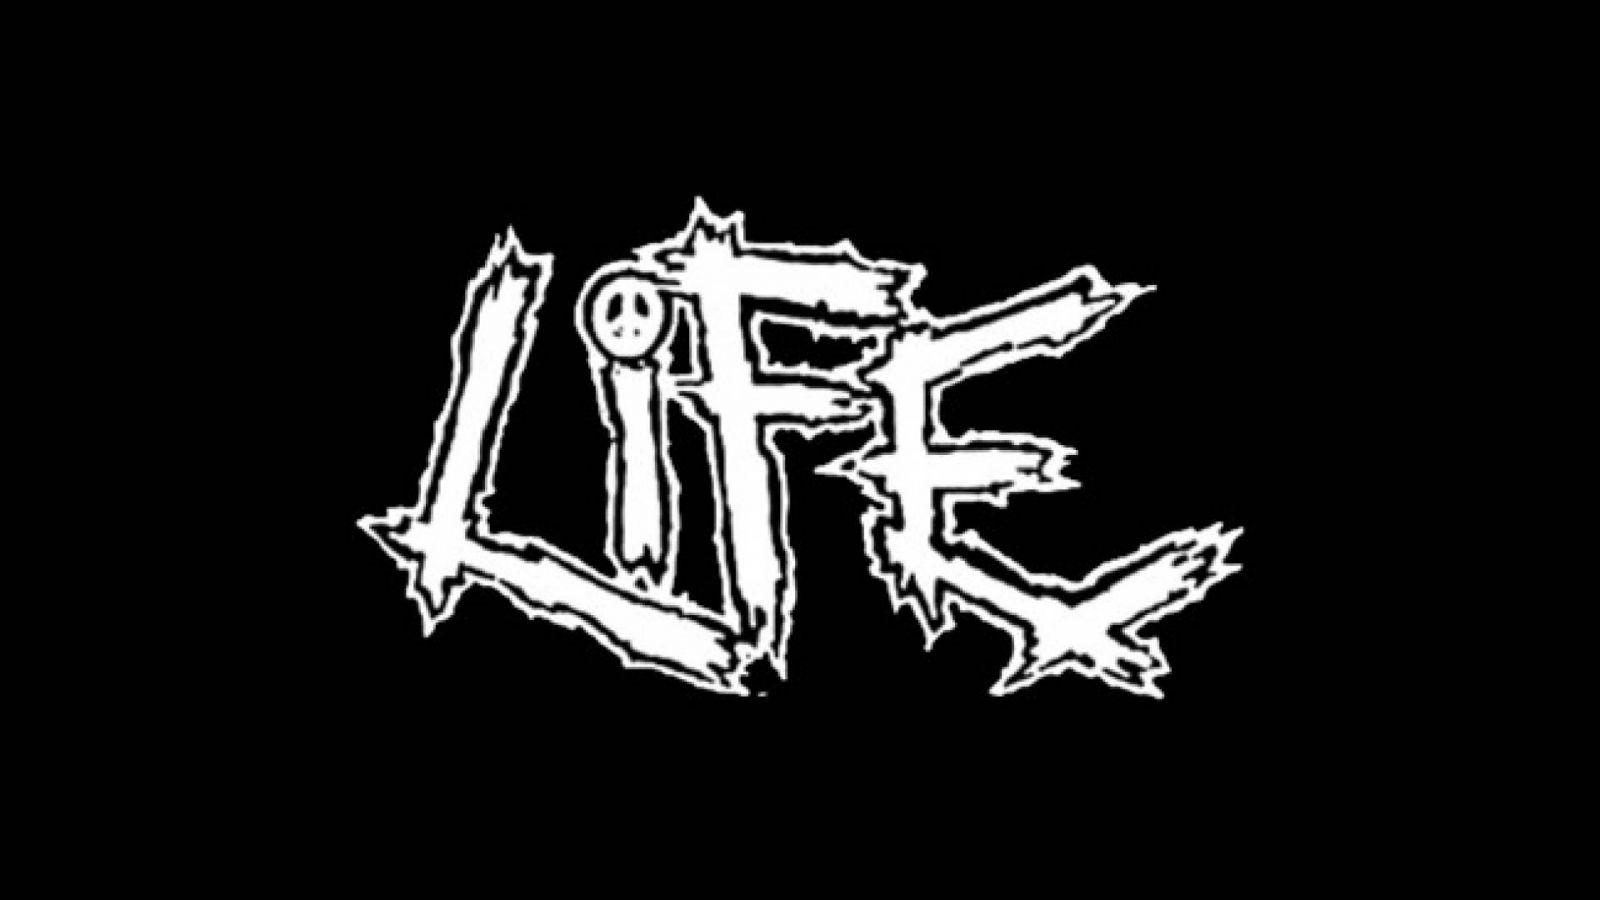 LiFE © LiFE. All Rights Reserved.